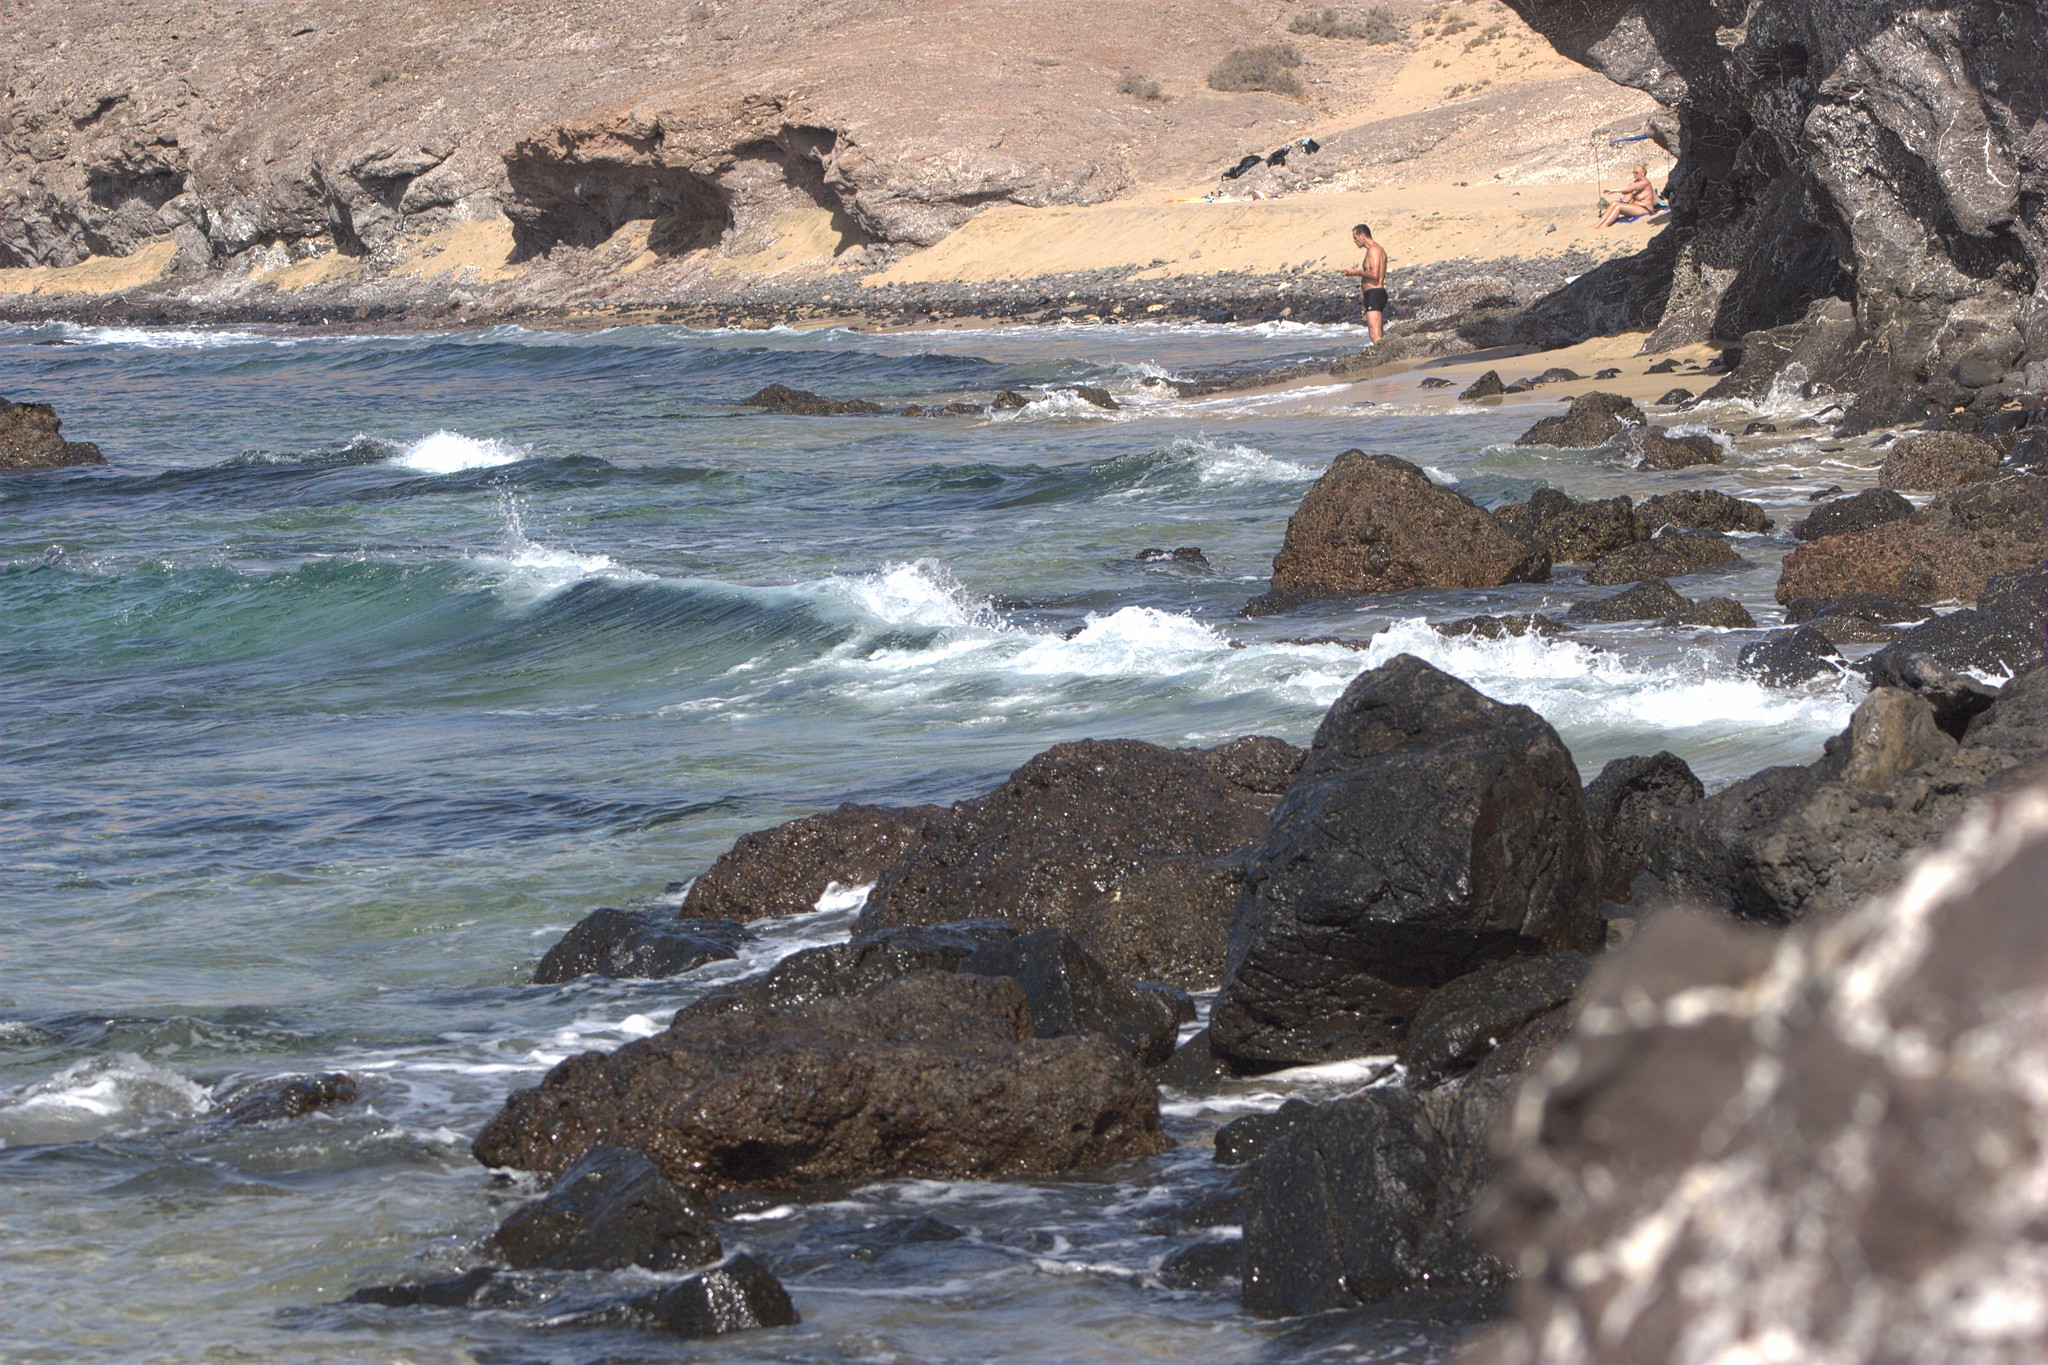 Papagayo. The Naturist Beach.